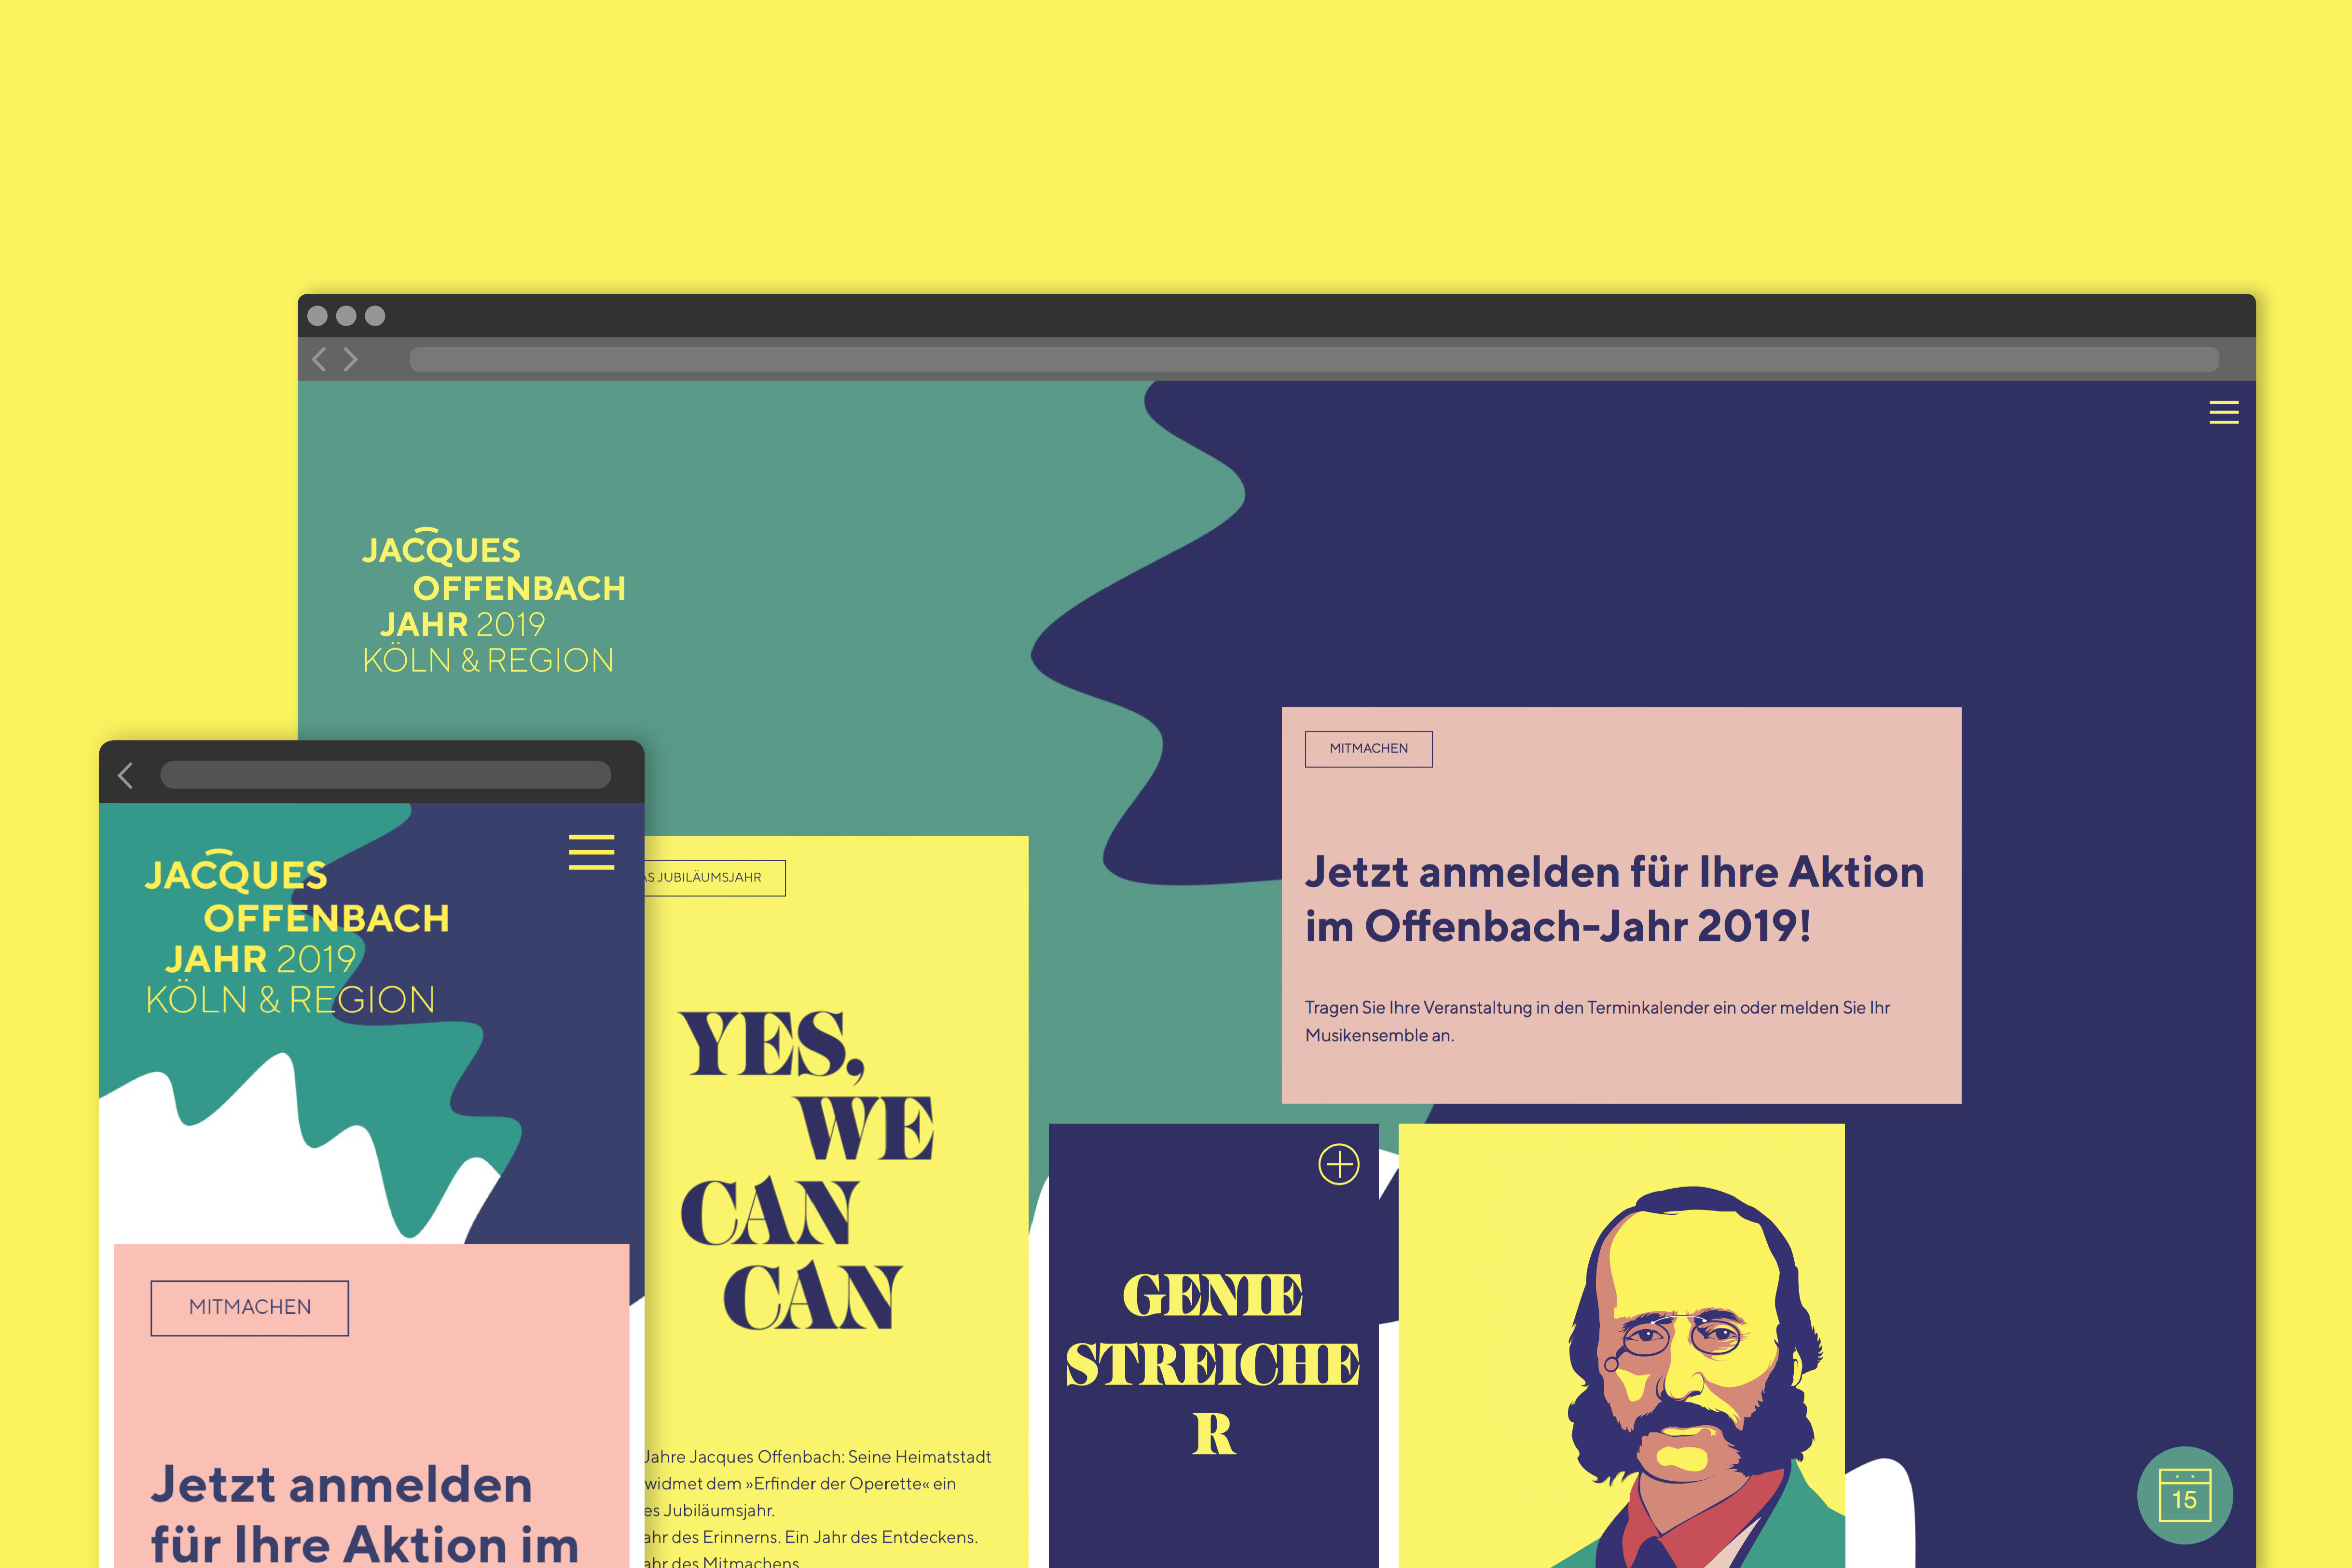 Website Jacques Offenbach Jahr 2019